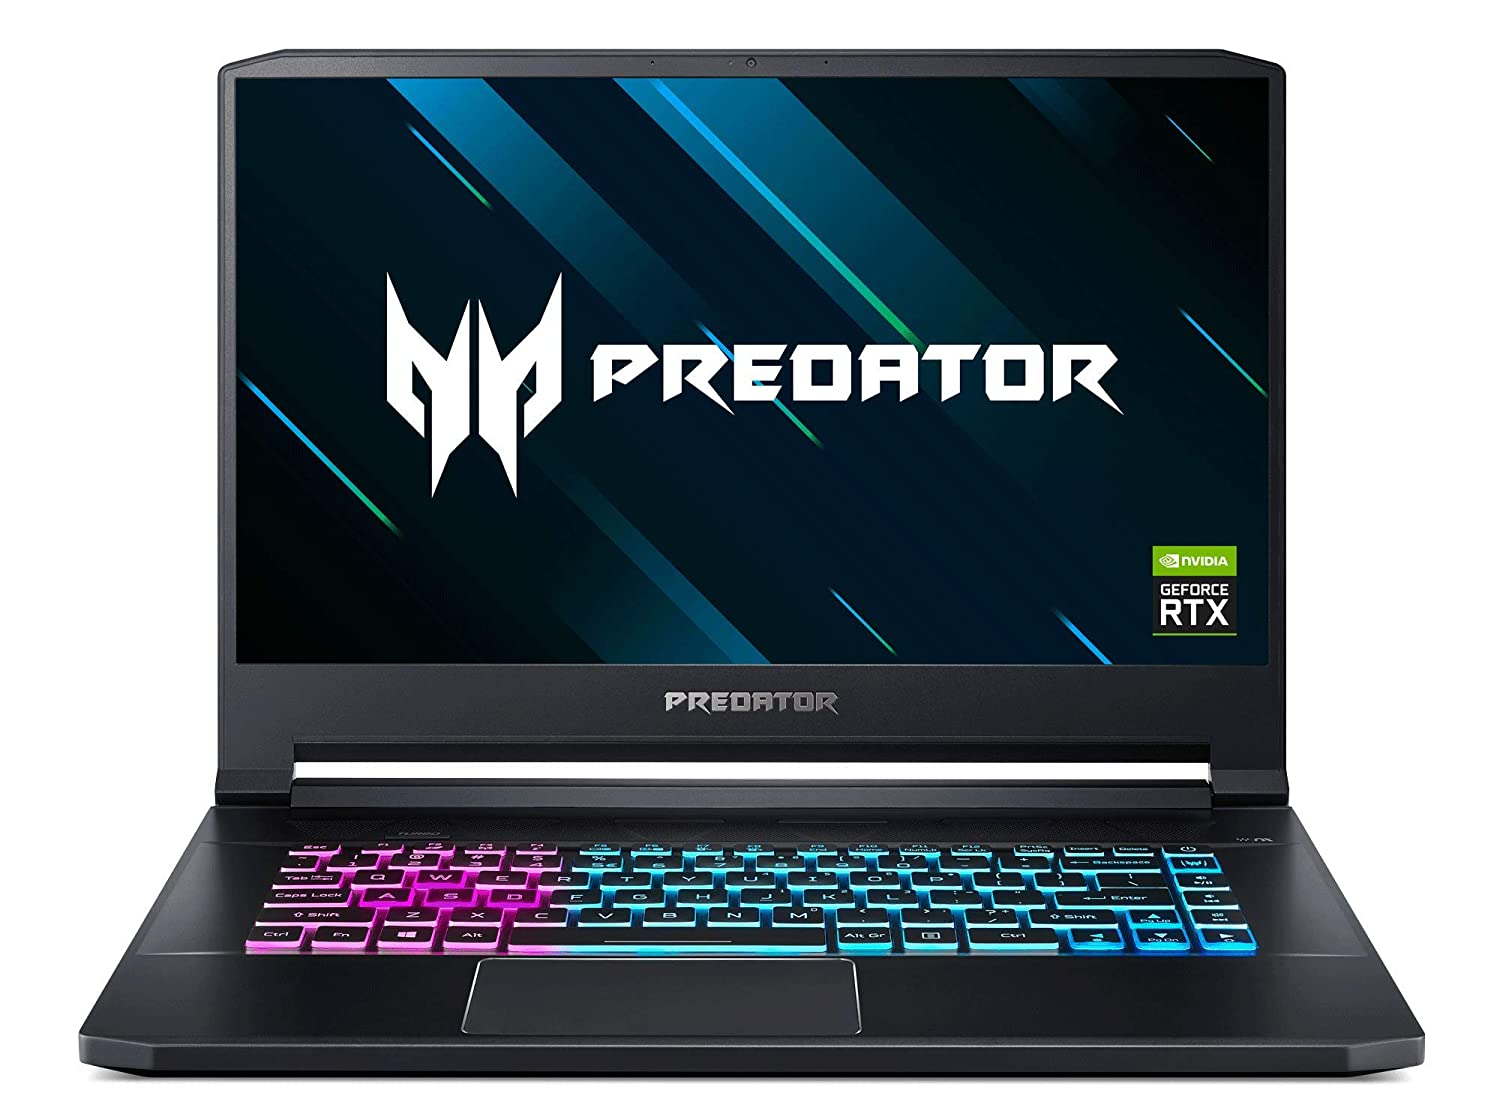 "Acer Predator Triton 500 Thin & Light Gaming Laptop, Intel Core i7-9750H, GeForce RTX 2060 with 6GB, 15.6"" Full HD 144Hz 3ms IPS Display, 16GB DDR4, 512GB PCIe NVMe SSD, RGB Keyboard, PT515-51-75BH"